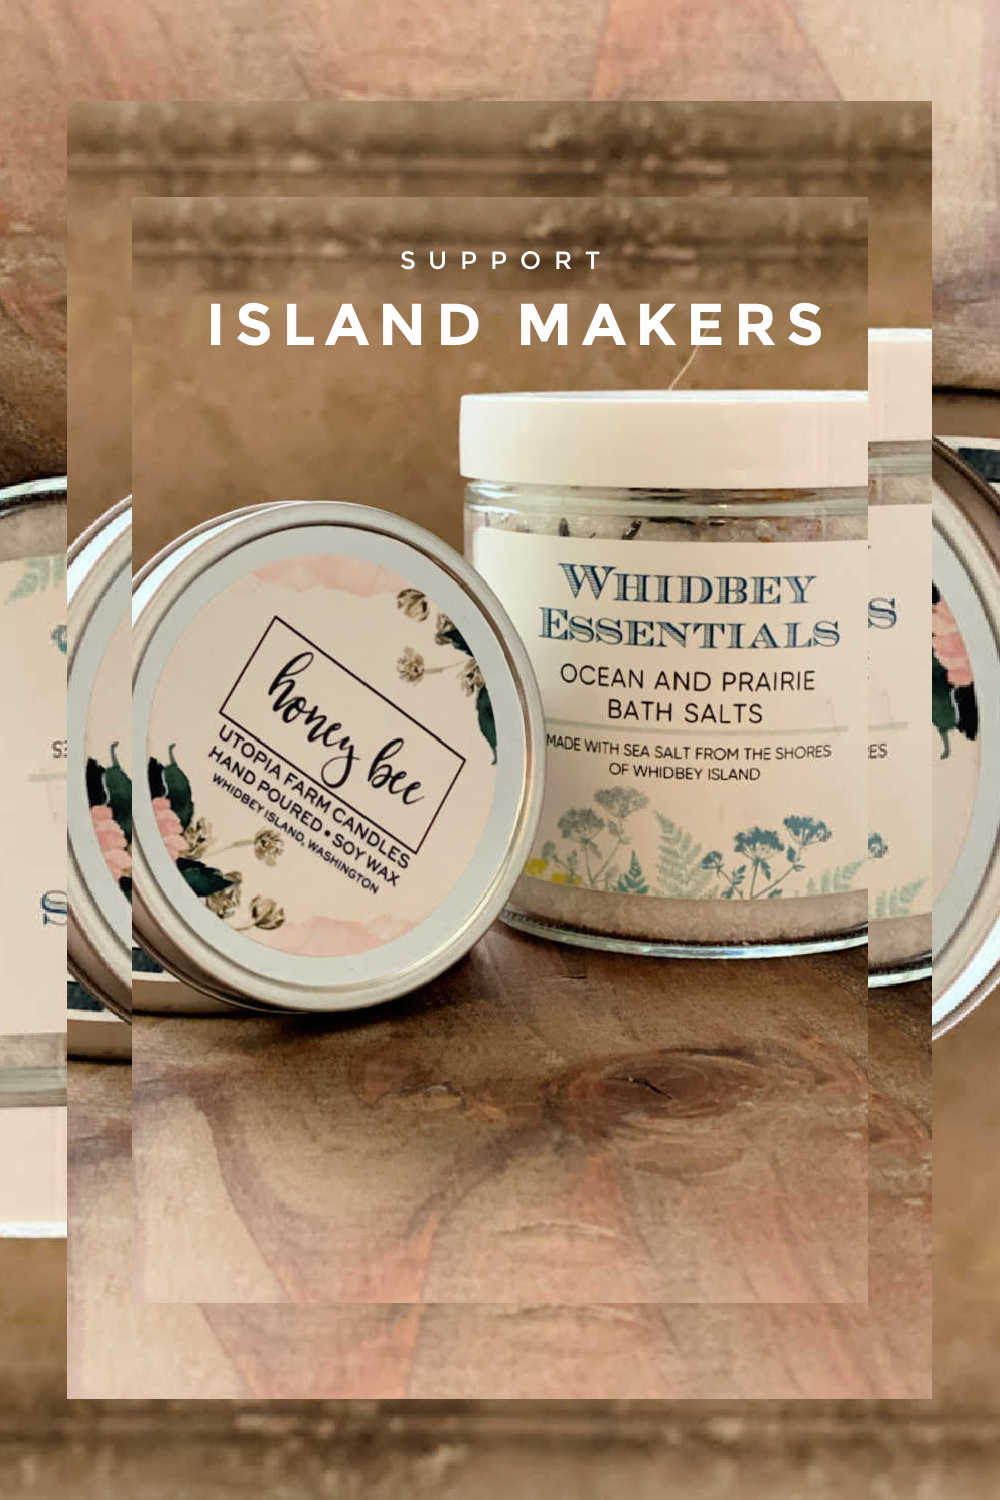 SUPPORT ISLAND MAKERS WHIDBEY